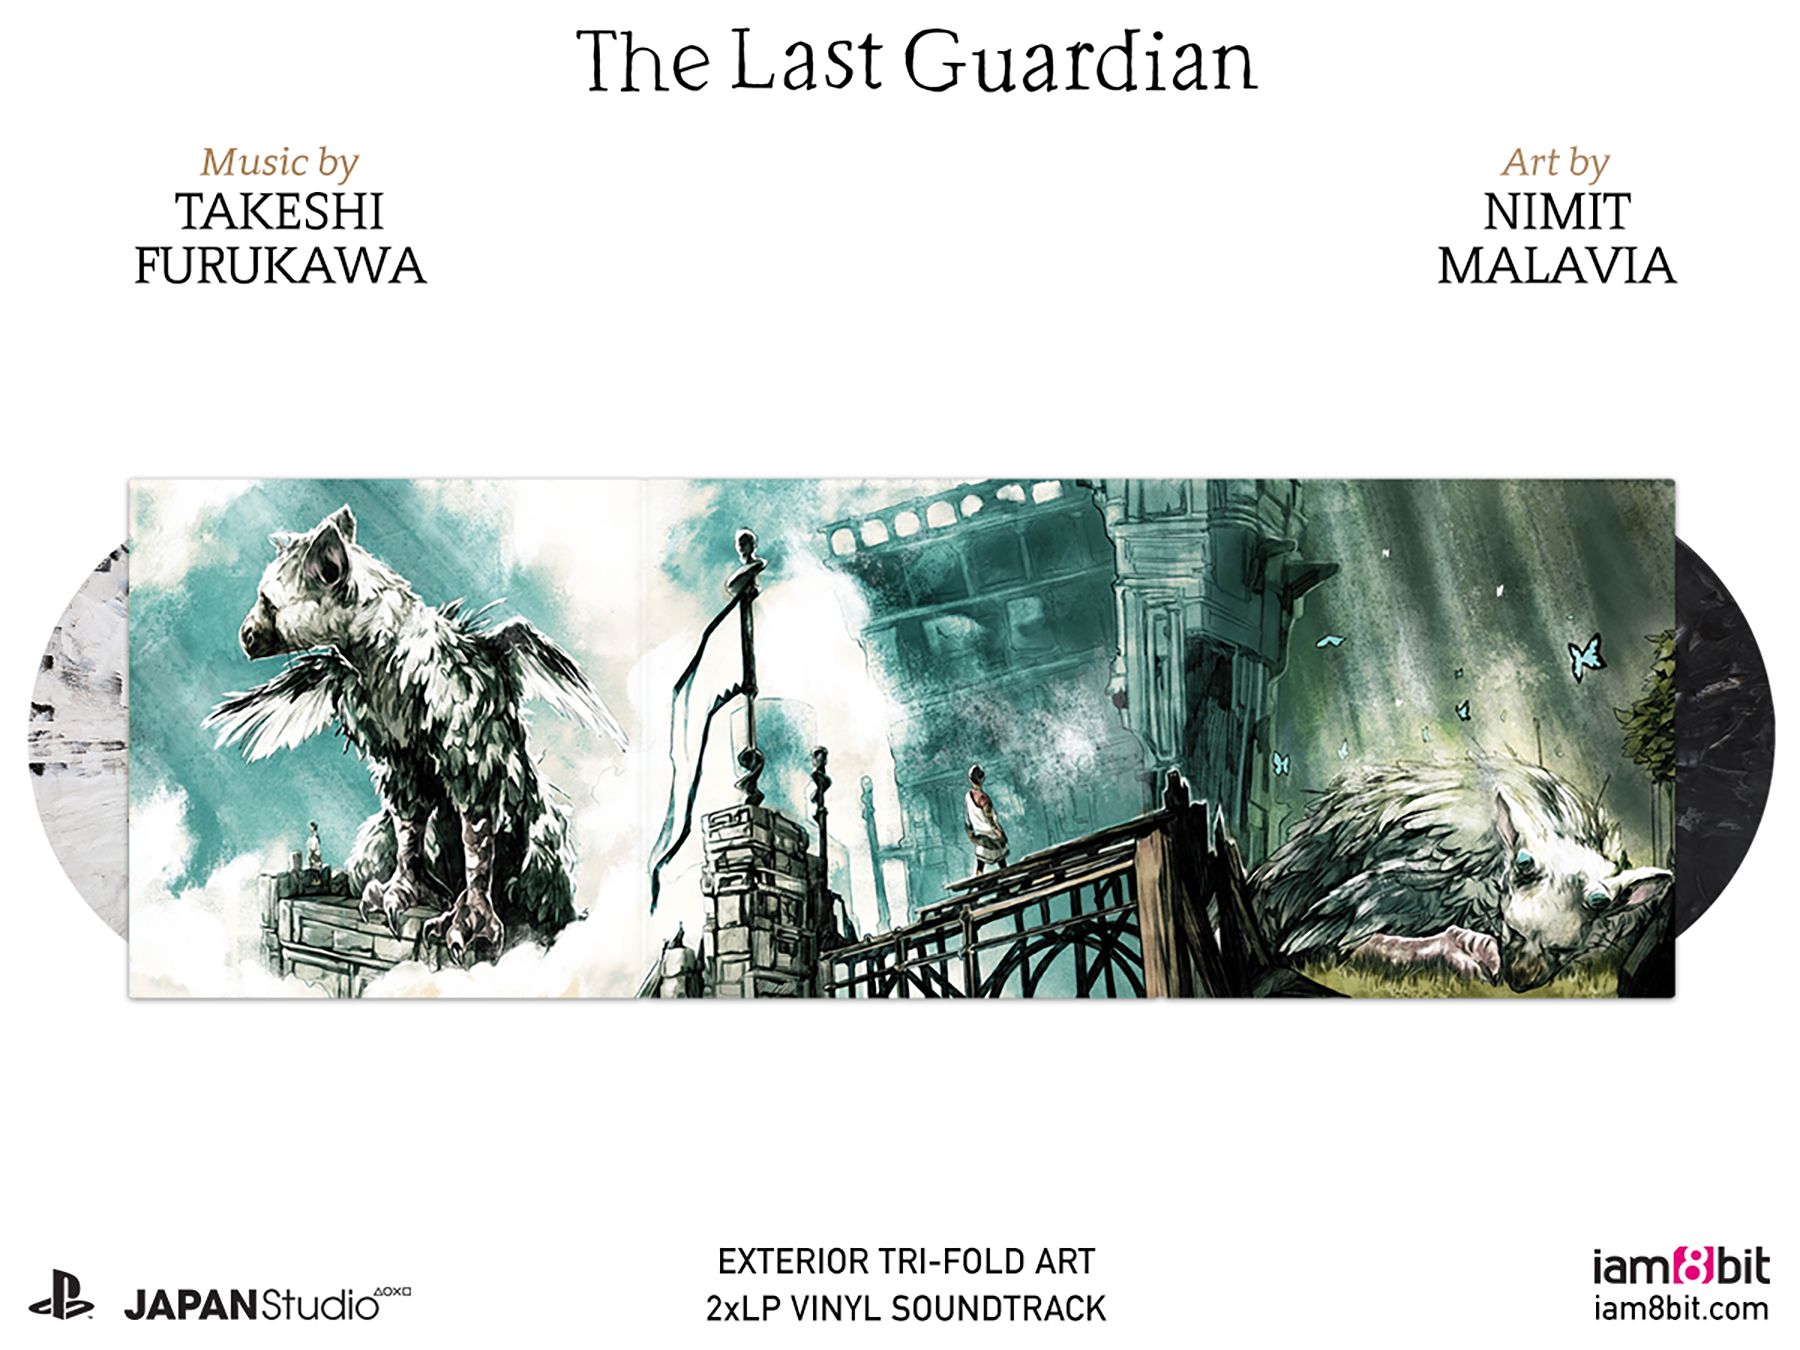 The Last Guardian Vinyl Release Announced, New Trailer Goes Behind the Music